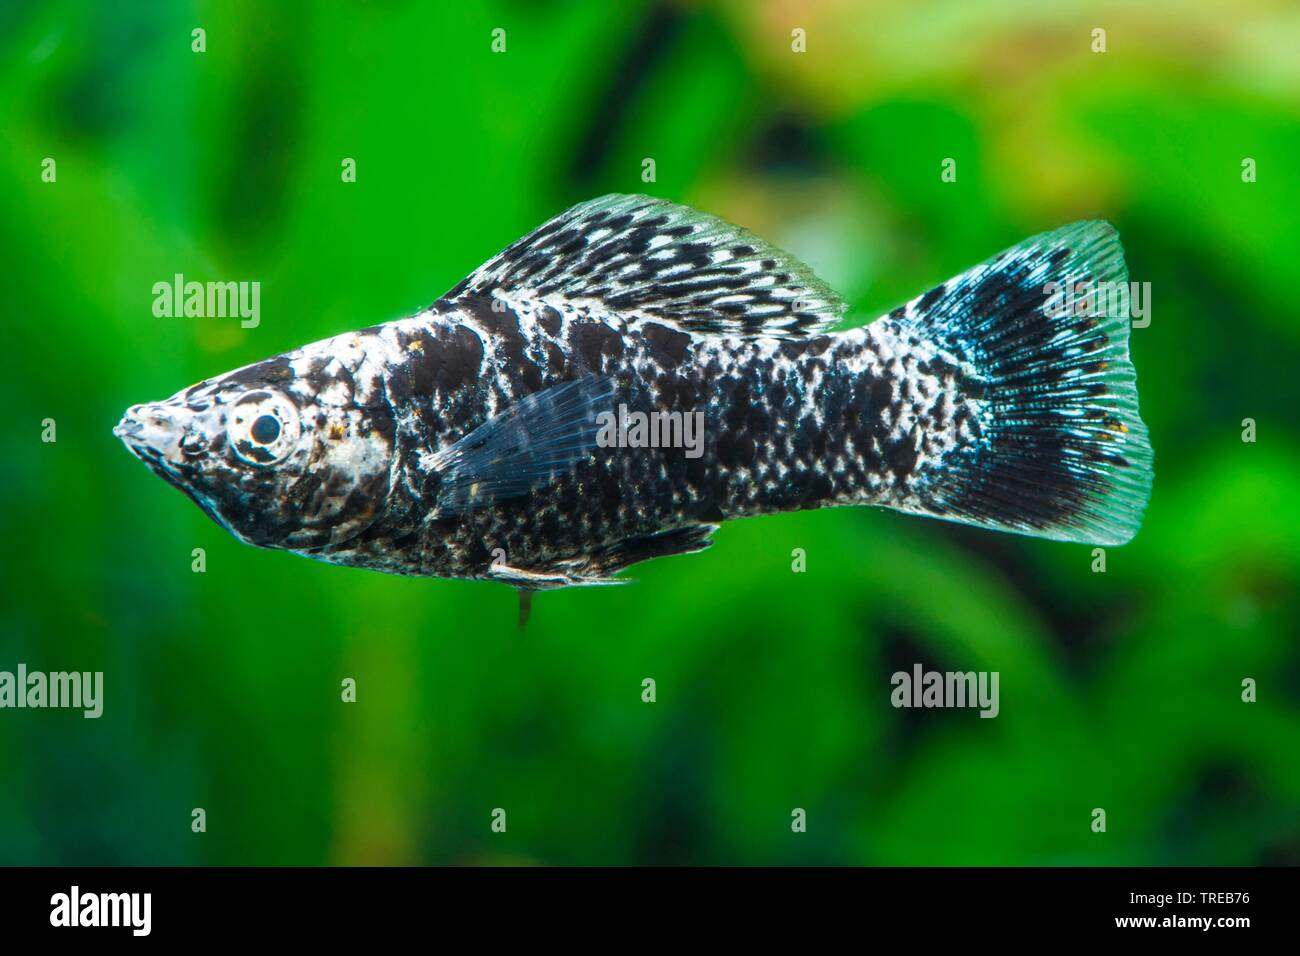 Mexican Molly, Marbled molly, Liberty Molly (Poecilia sphenops, Mollienesia sphenops), swimming, side view Stock Photo